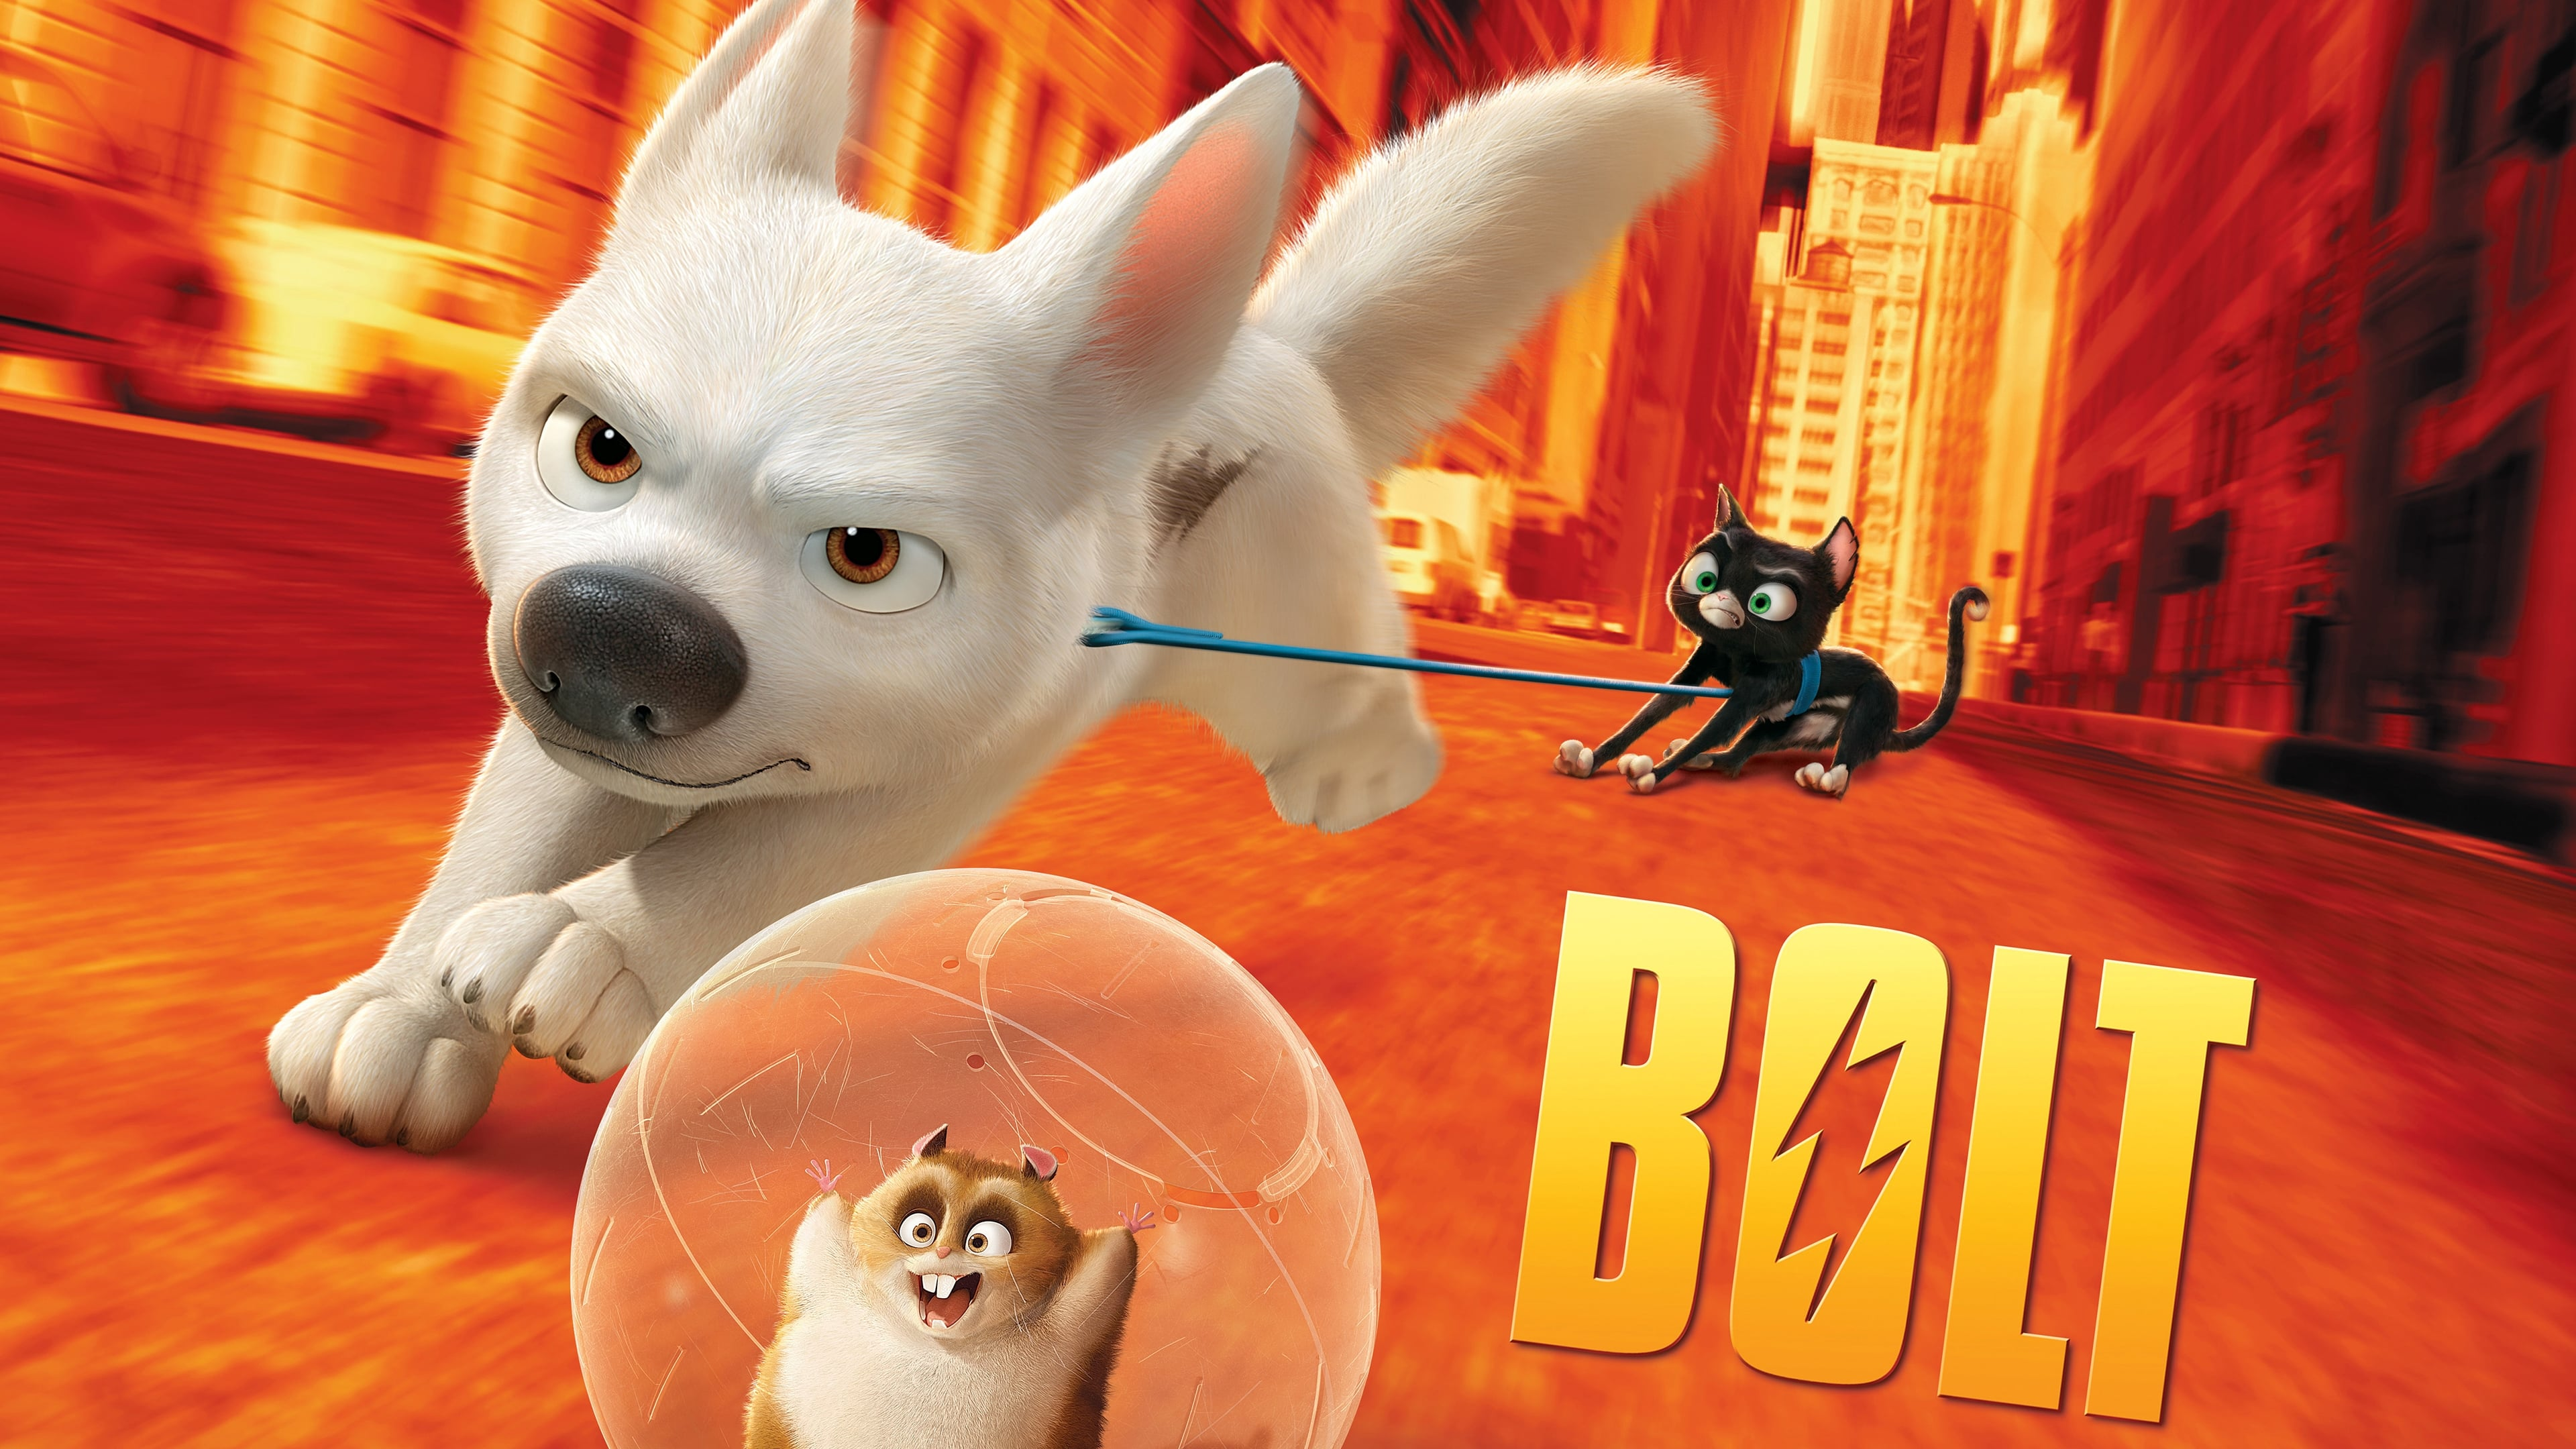 bolt wiki synopsis reviews movies rankings